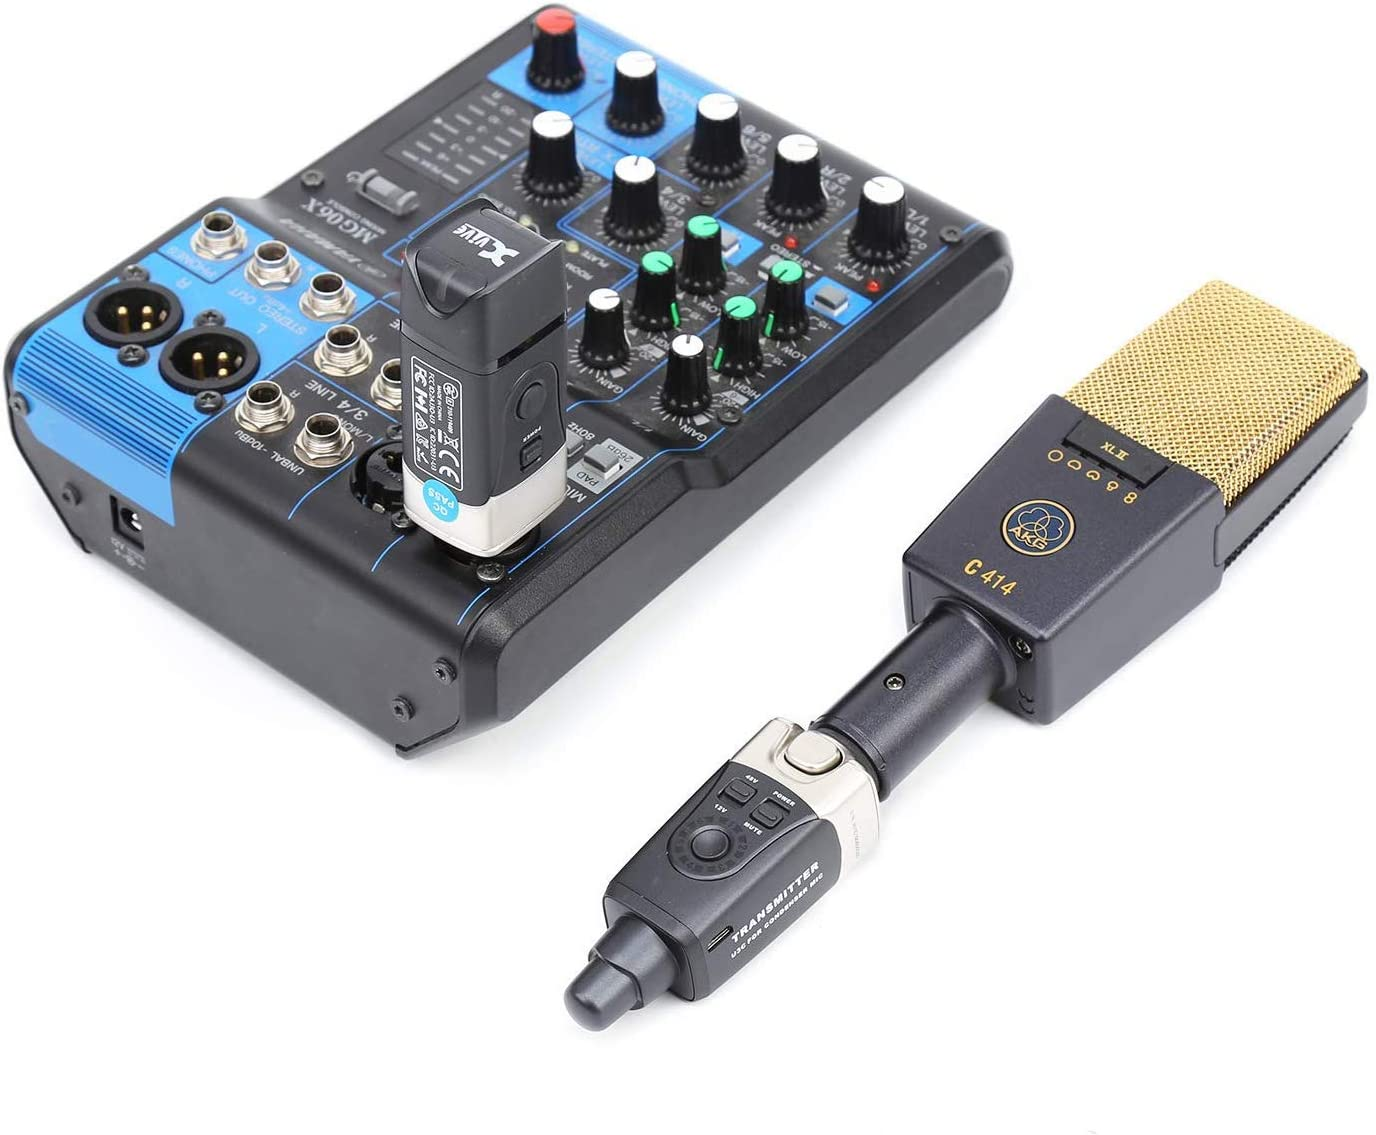 PA System Audio Mixer Xvive U3C Condenser Microphone Wireless System with 2.4GHz XLR Transmitter and Receiver for Microphone A perfect Wireless Microphone System for a Wide Range of Applications